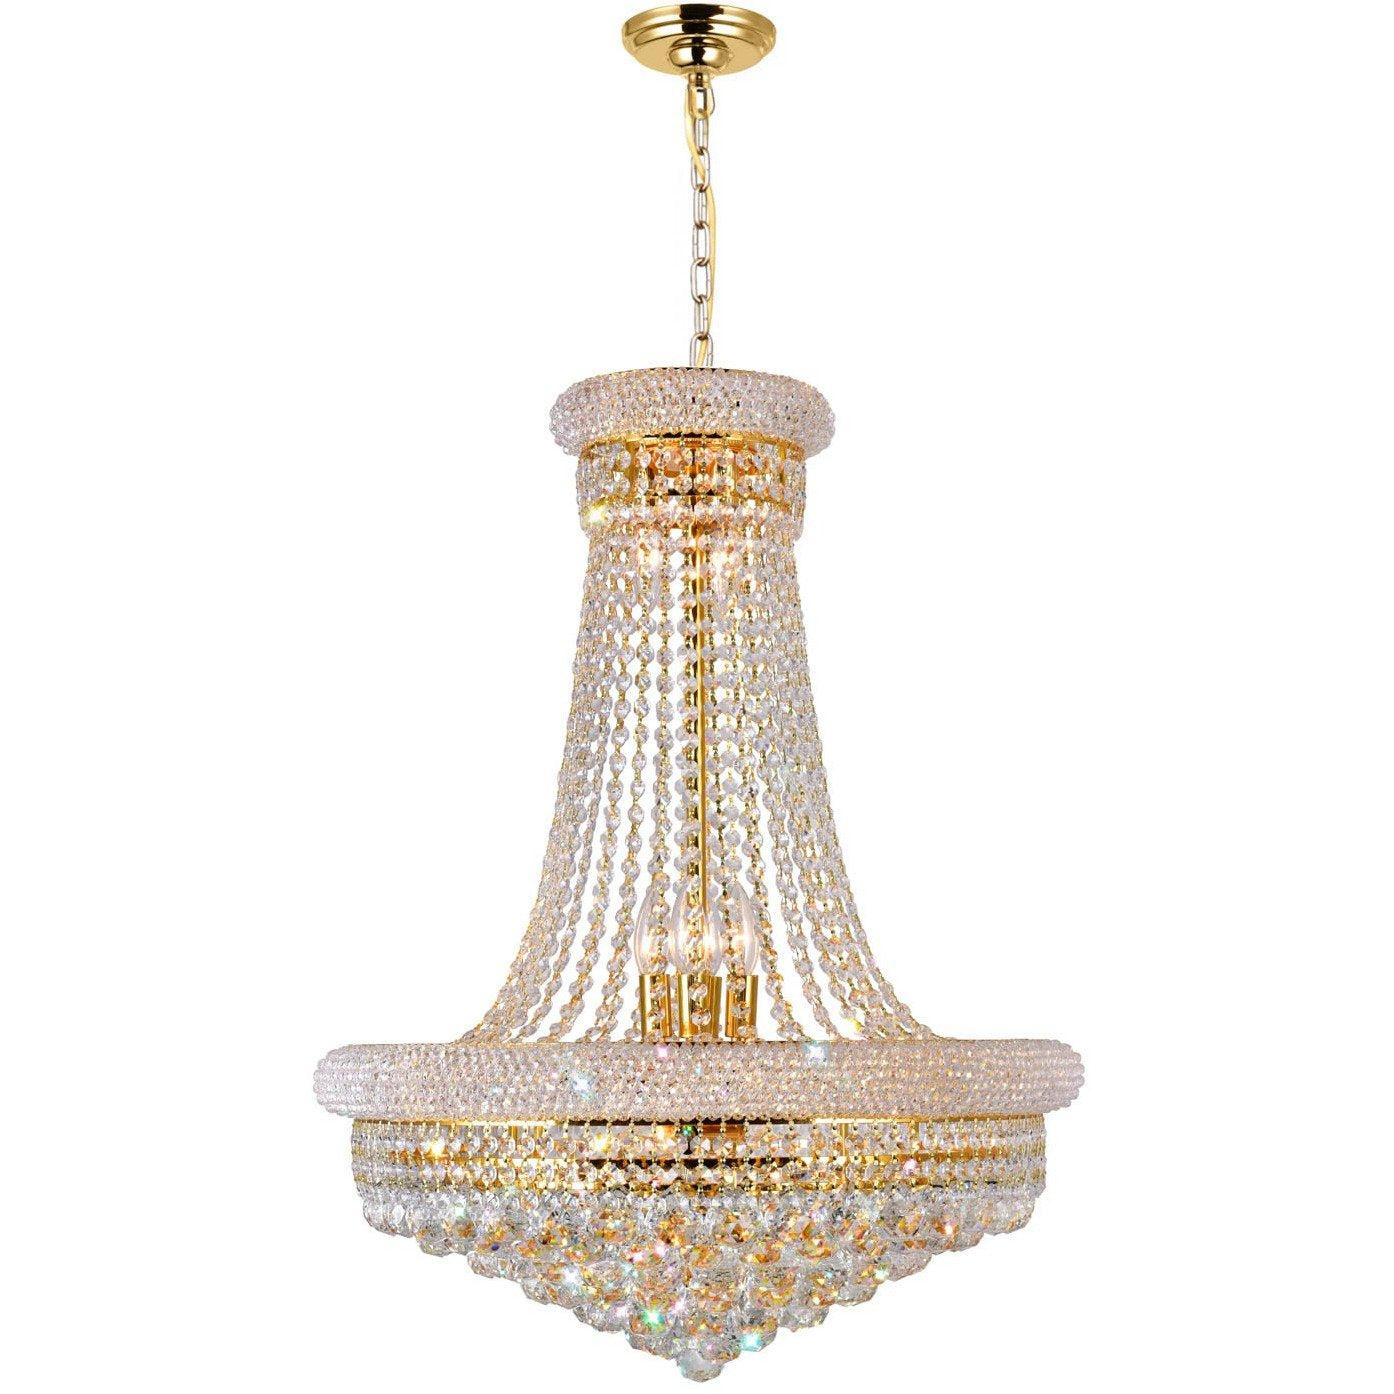 CWI Lighting Chandeliers Gold / K9 Clear Empire 17 Light Down Chandelier with Gold finish by CWI Lighting 8001P24G